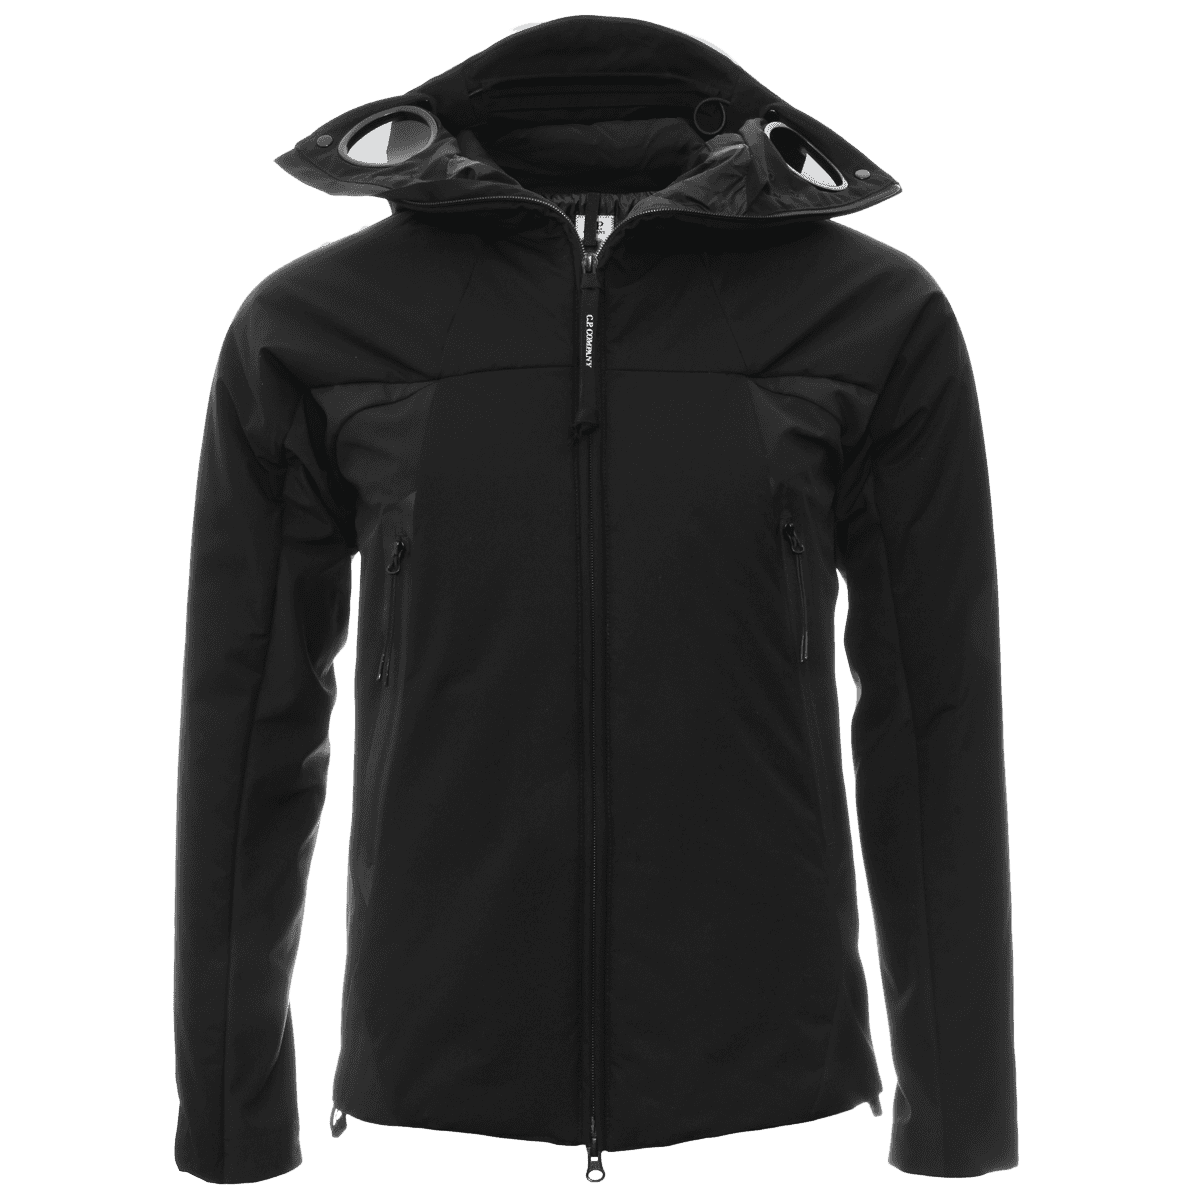 Cabinero Berlin Herrenmode SS17 C.P.Company Softshell 02CMOW127A004117M (1)